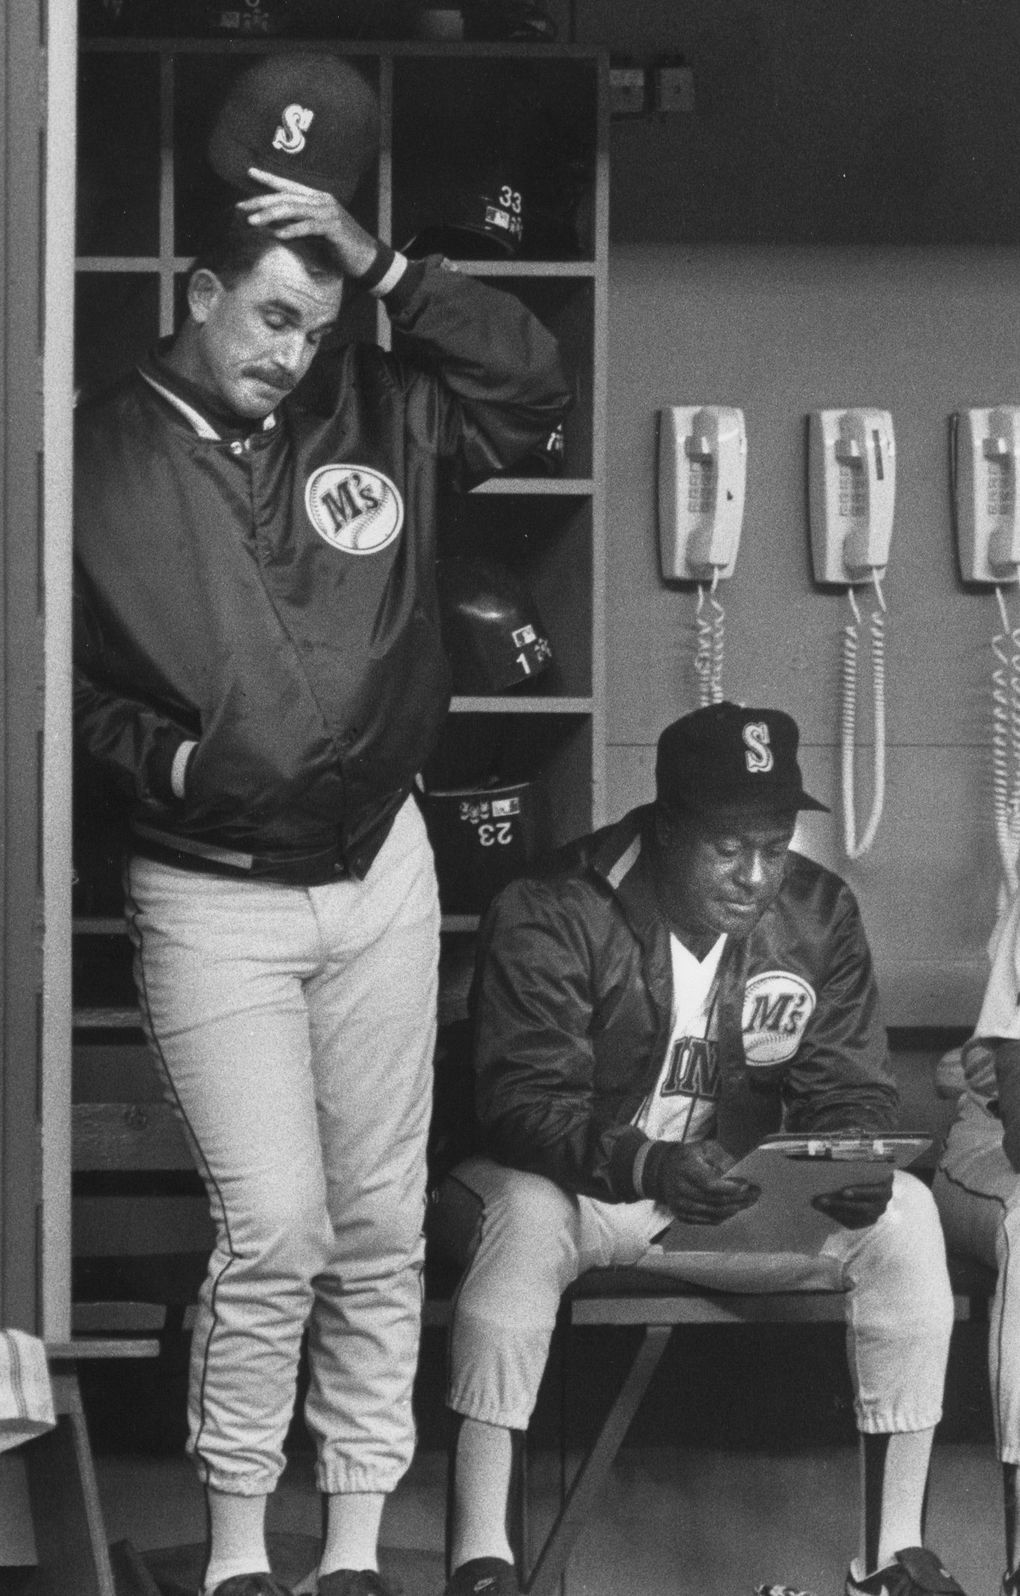 Mariners manager Bill Plummer watches a woeful team as hitting coach Gene Clines consults his clipboard. (Alan Berner / The Seattle Times, 1992 file)